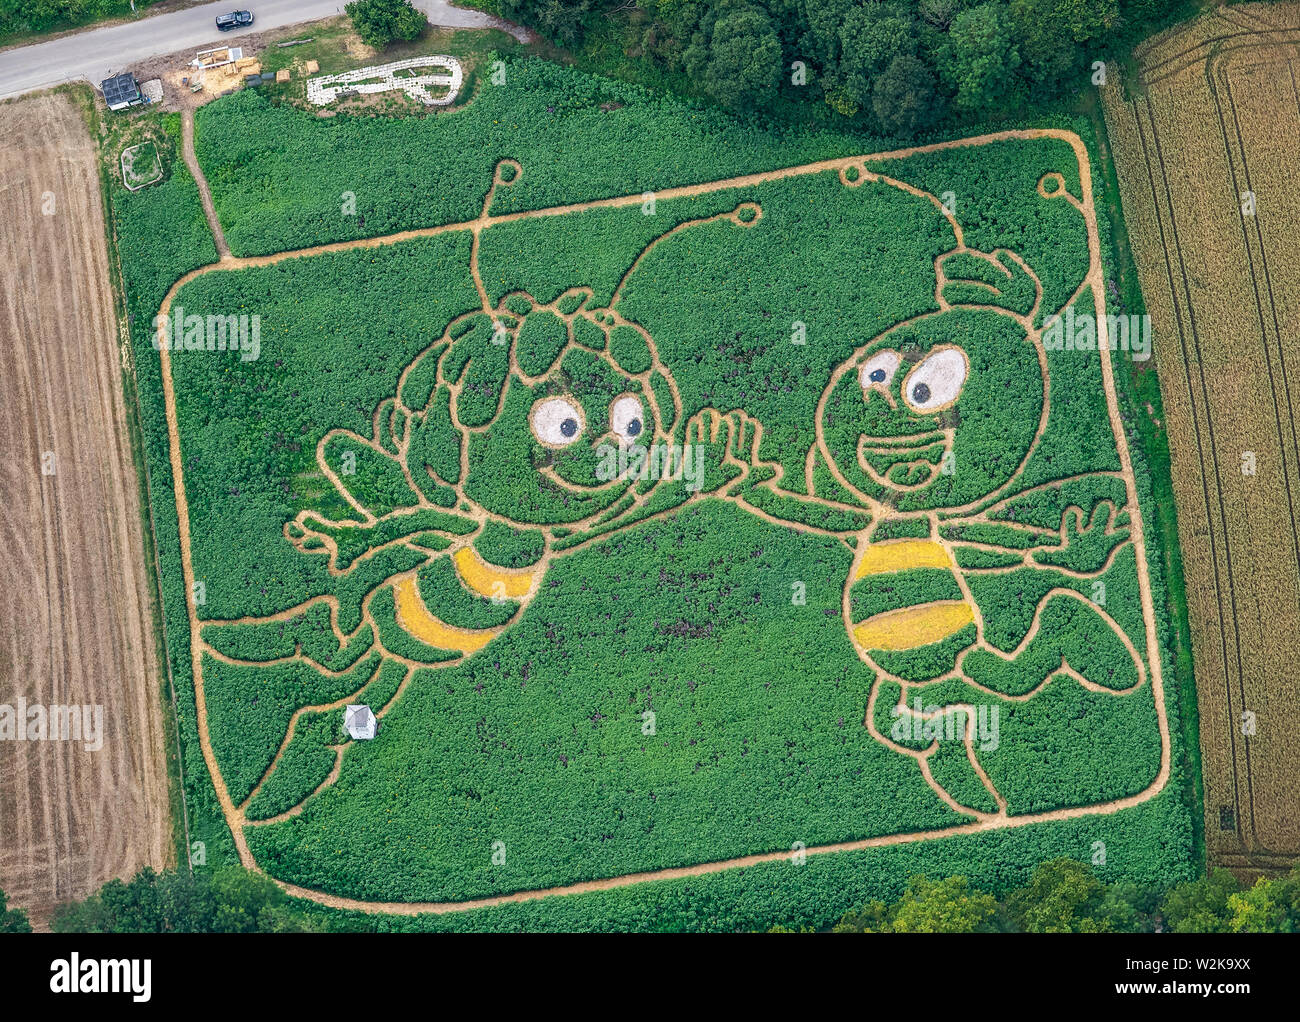 09 July 2019, Bavaria, Utting am Ammersee: The aerial photograph shows a cultivated plant field on the shore of the Upper Bavarian Ammersee lake, in which the farmers Corinne and Uli Ernst and their 20-strong team have worked in a maze with the outlines of Maya the Bee and her friend Willi. A bee-friendly plant mixture of sunflowers, hemp, maize, wild mallow, ornamental pumpkins, beans, wild wine and hops was sown in April. Later, with the help of GPS technology, students from Munich University of Applied Sciences were able to measure the motif in the 1.89-hectare field. The Ex Orname - Stock Image